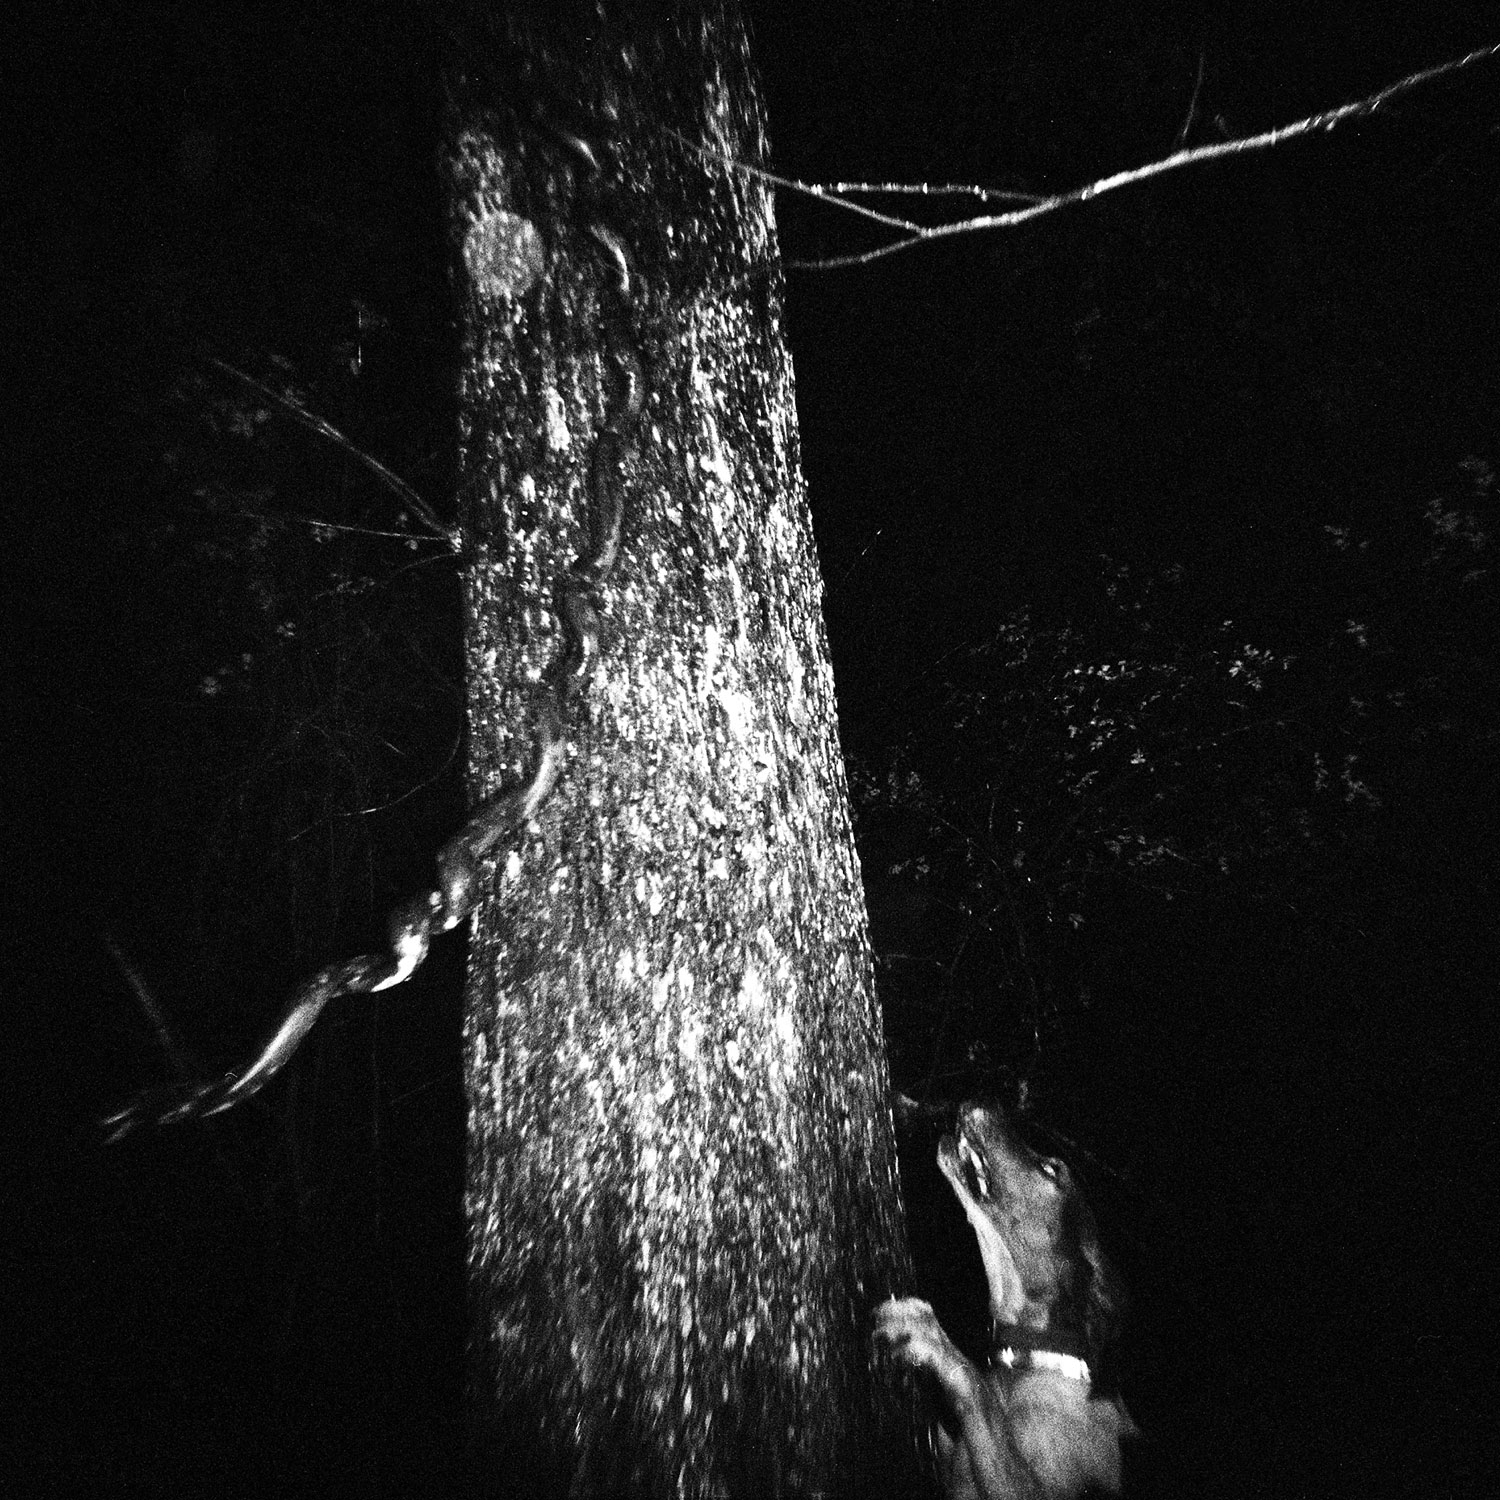 thibodeaux_coons_hunting_dogs_night_dark_woods_forest_south_rural_texas_sport_010.JPG